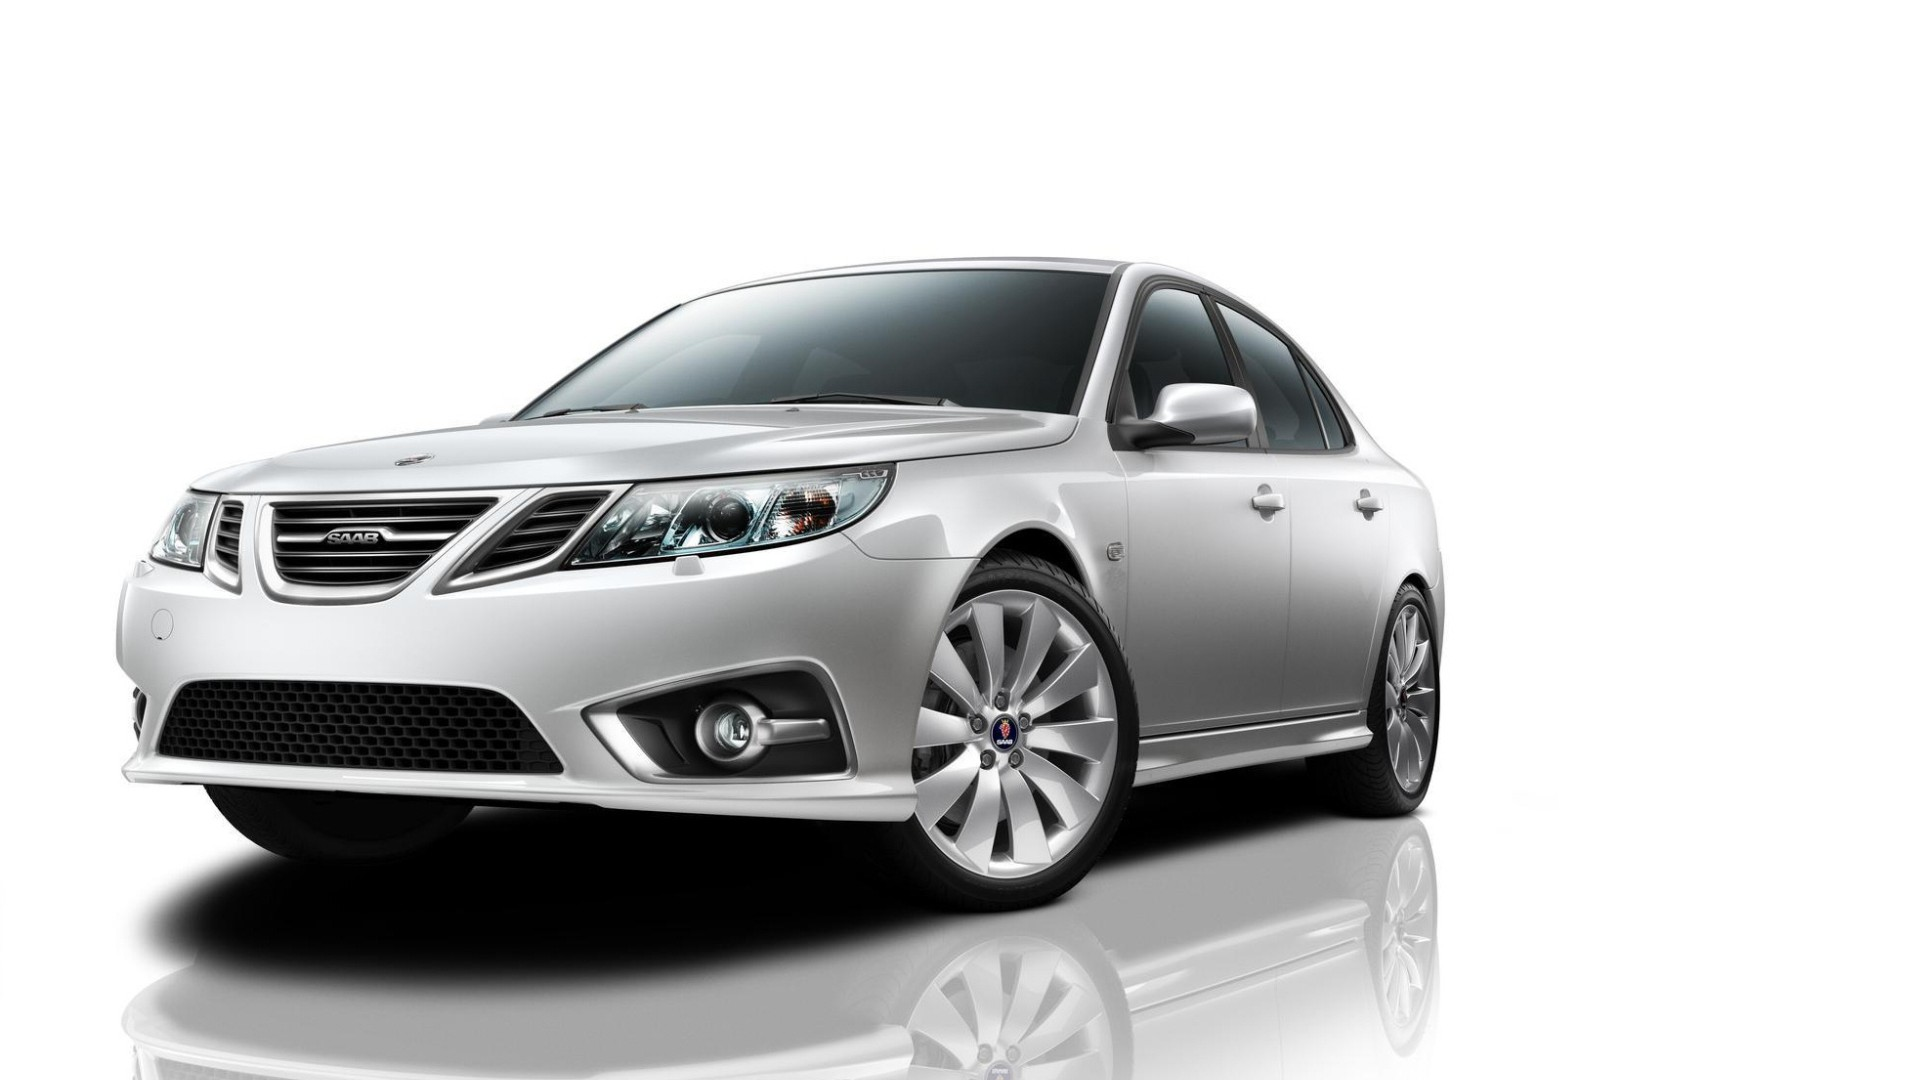 The last Saab ever is being sold